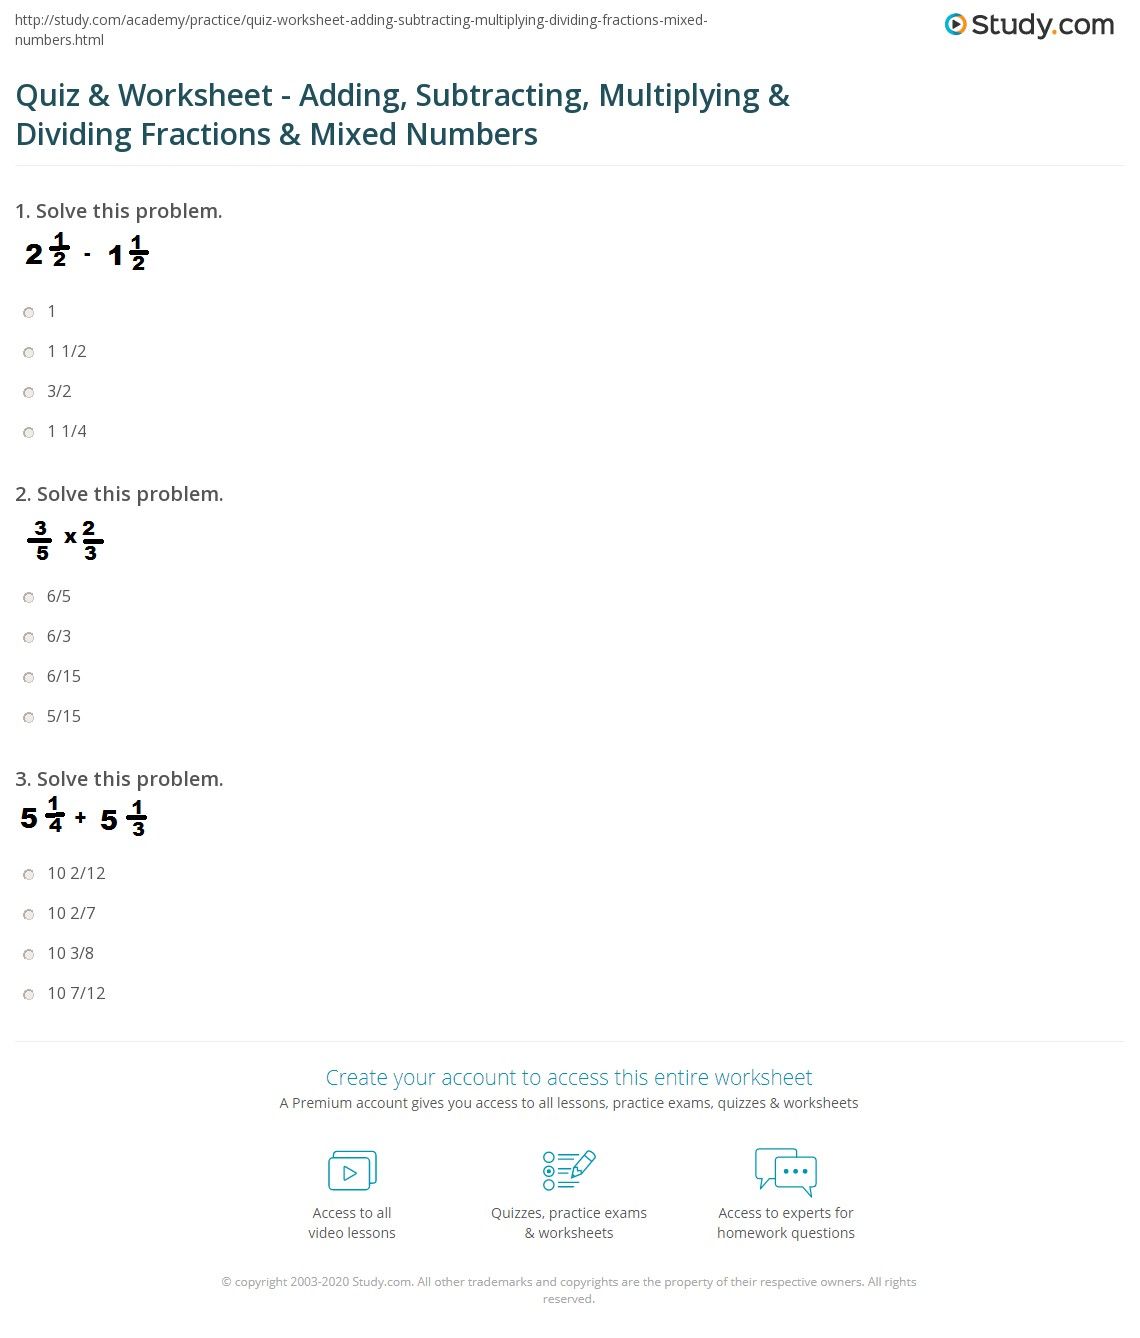 worksheet Mixed Problems With Fractions quiz worksheet adding subtracting multiplying dividing print add subtract multiply divide fractions mixed numbers worksheet